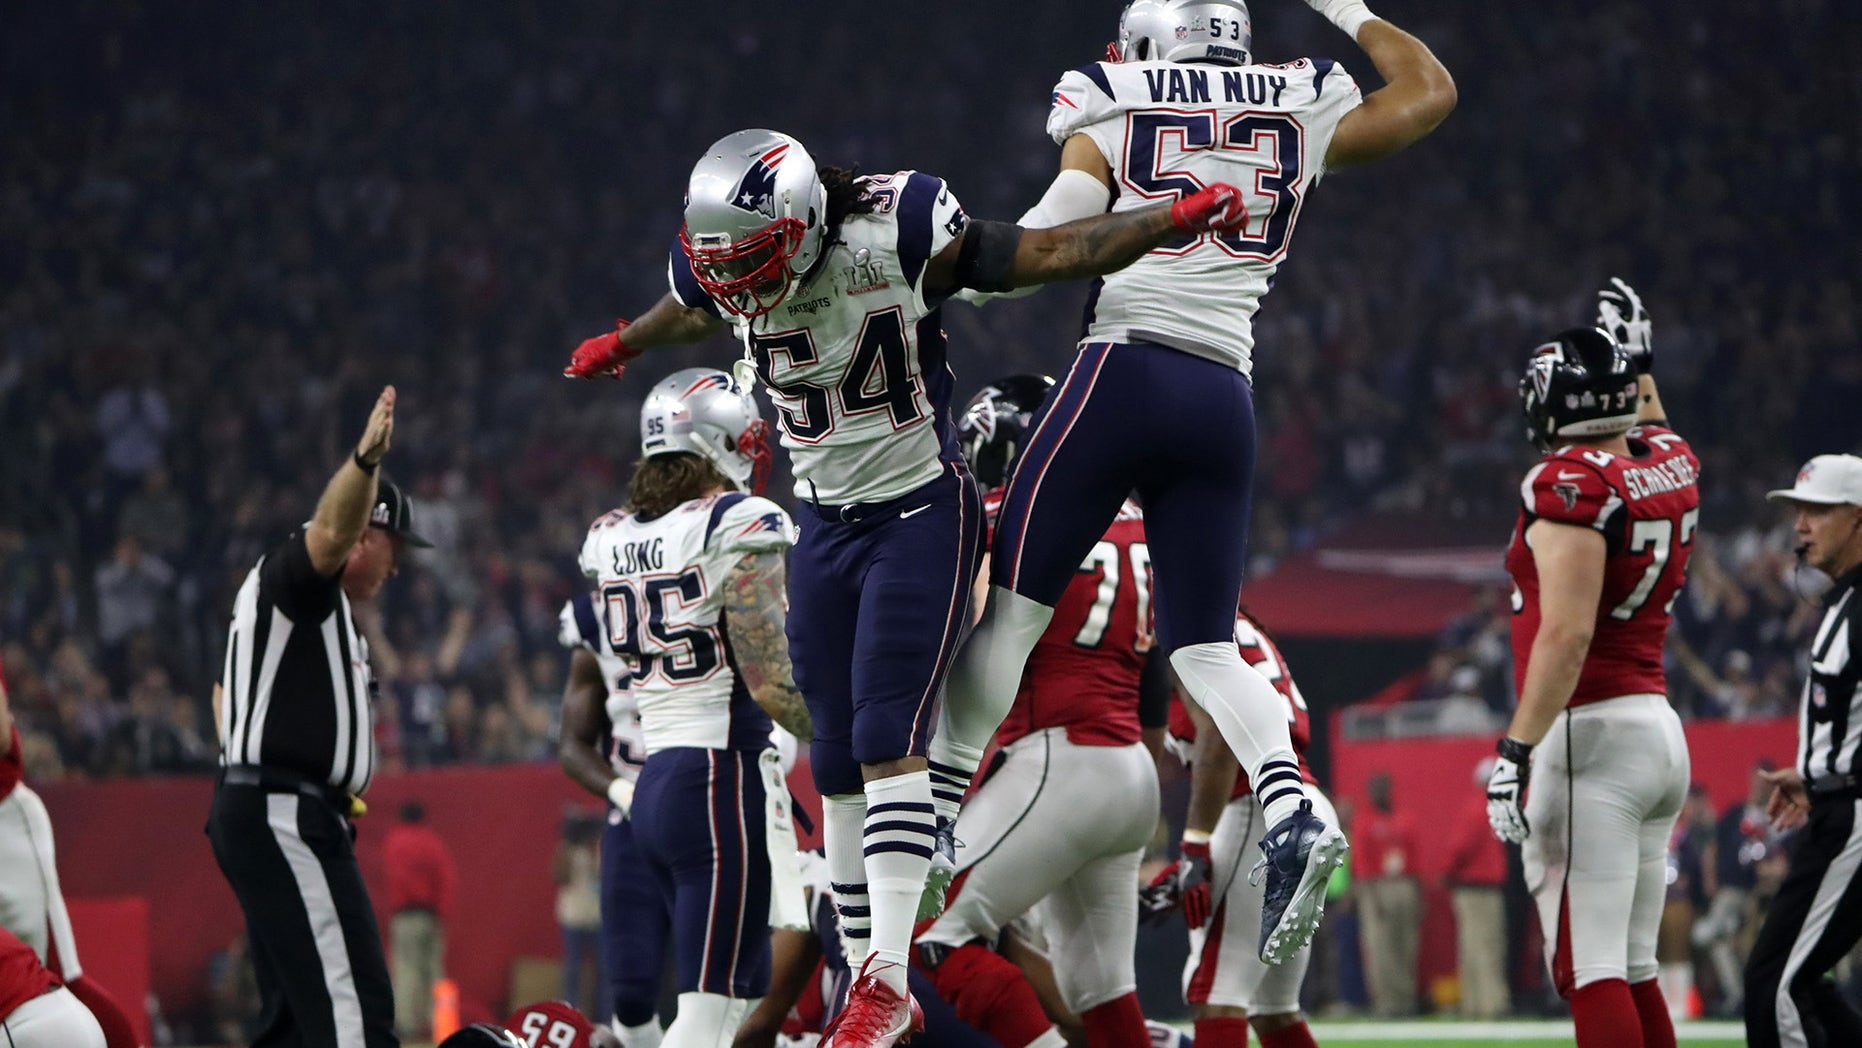 FILE -- February 5, 2017: New England Patriots' Dont'a Hightower (L) and Kyle Van Noy celebrate after New England recovered the ball during the fourth quarter against the Atlanta Falcons at Super Bowl LI in Houston, Texas.